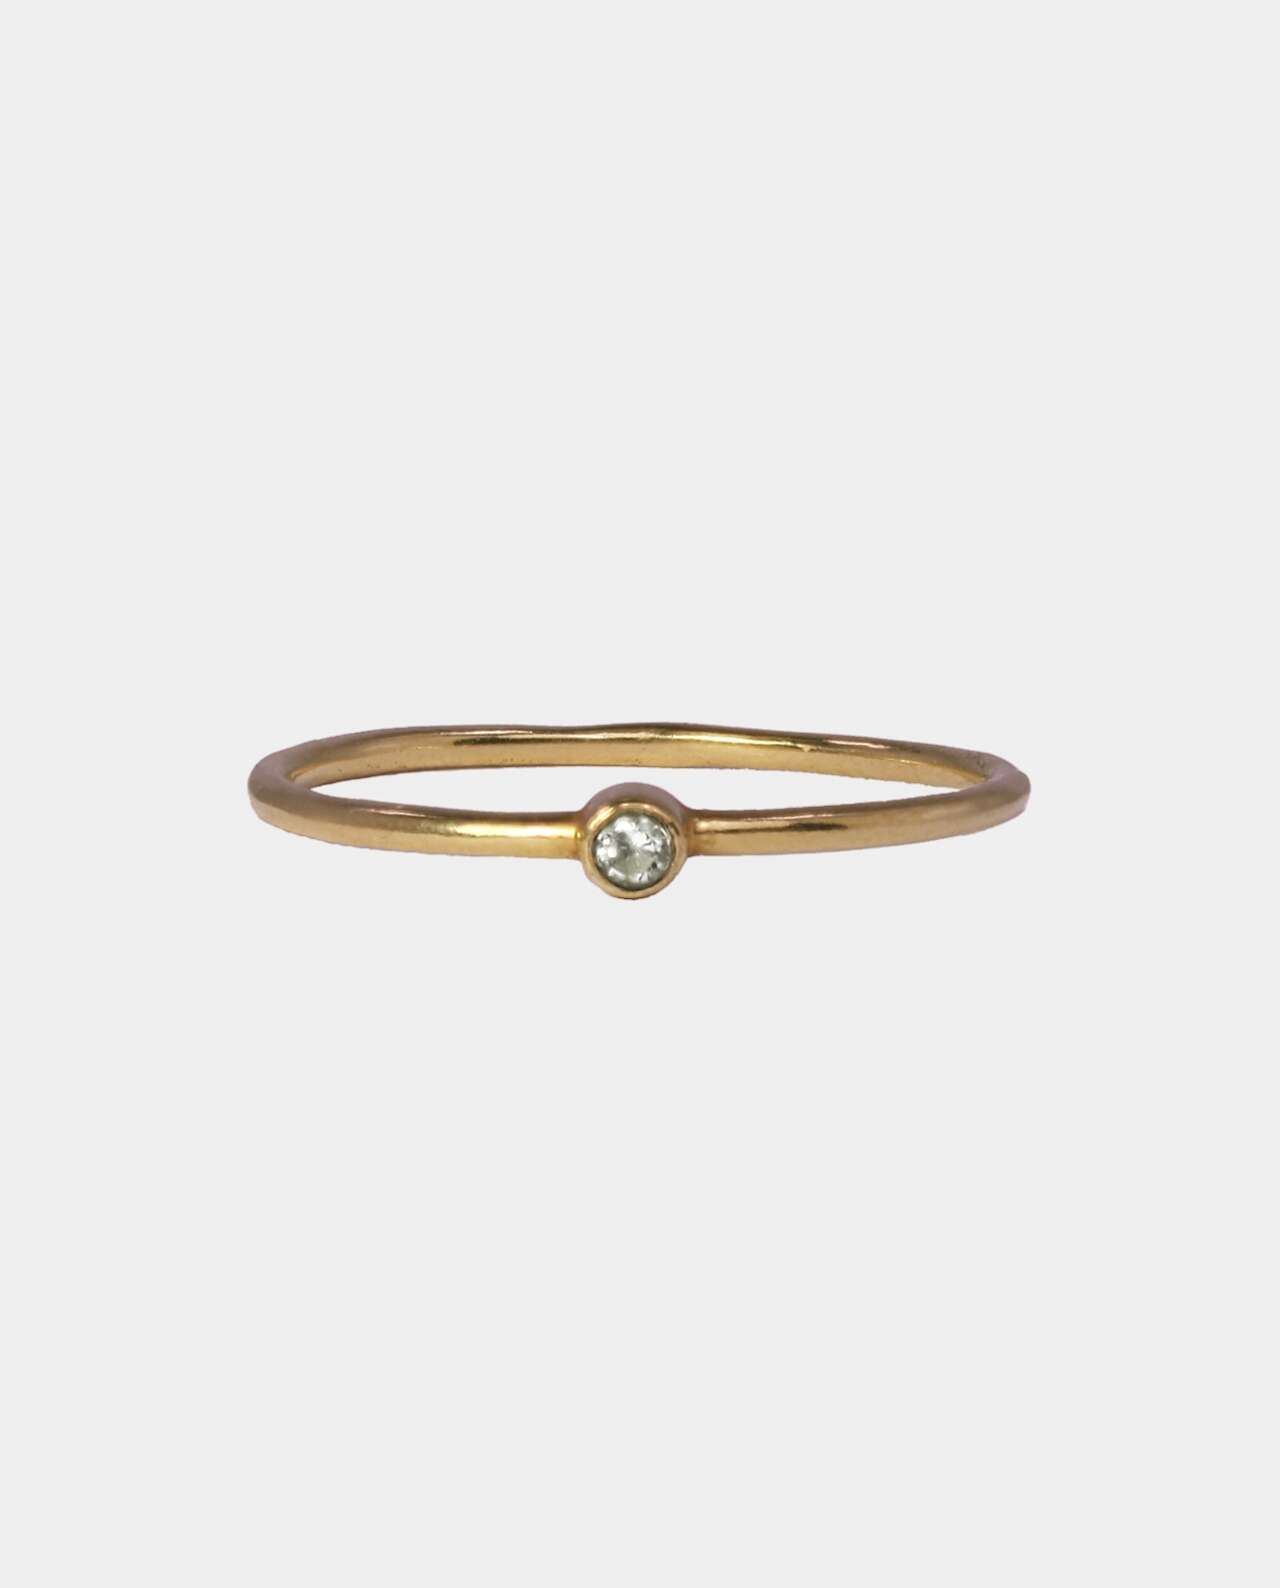 Gilded vintage ring with zircon and charming bumps that lead thoughts back to the royal tombs of history